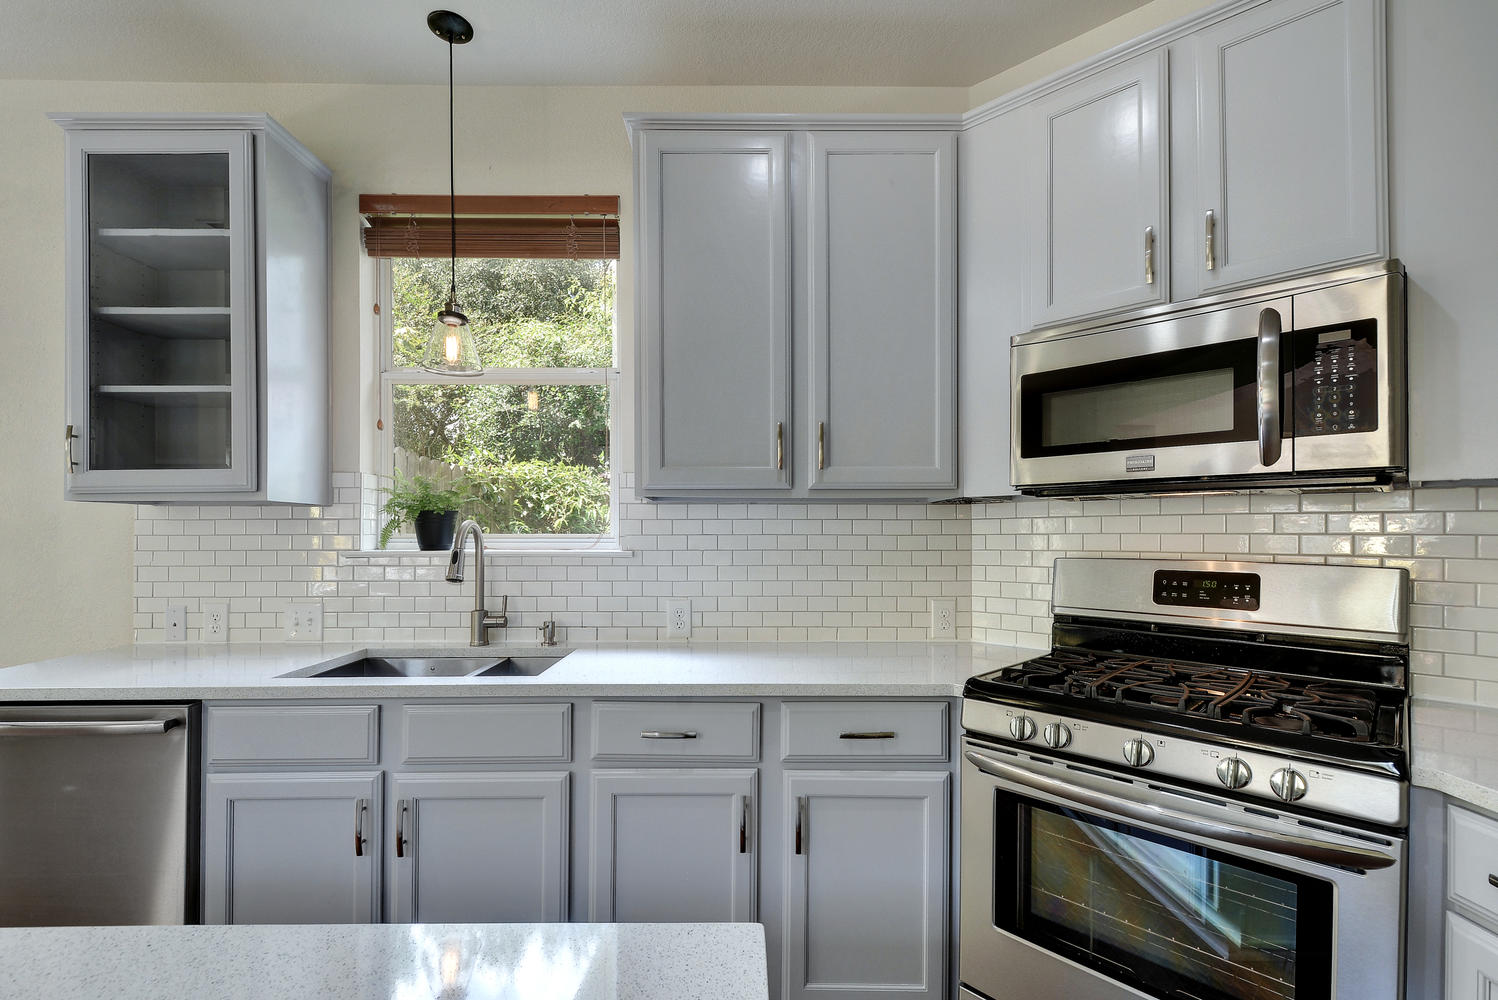 5 areas sellers should pay extra attention to when preparing to sell kitchen